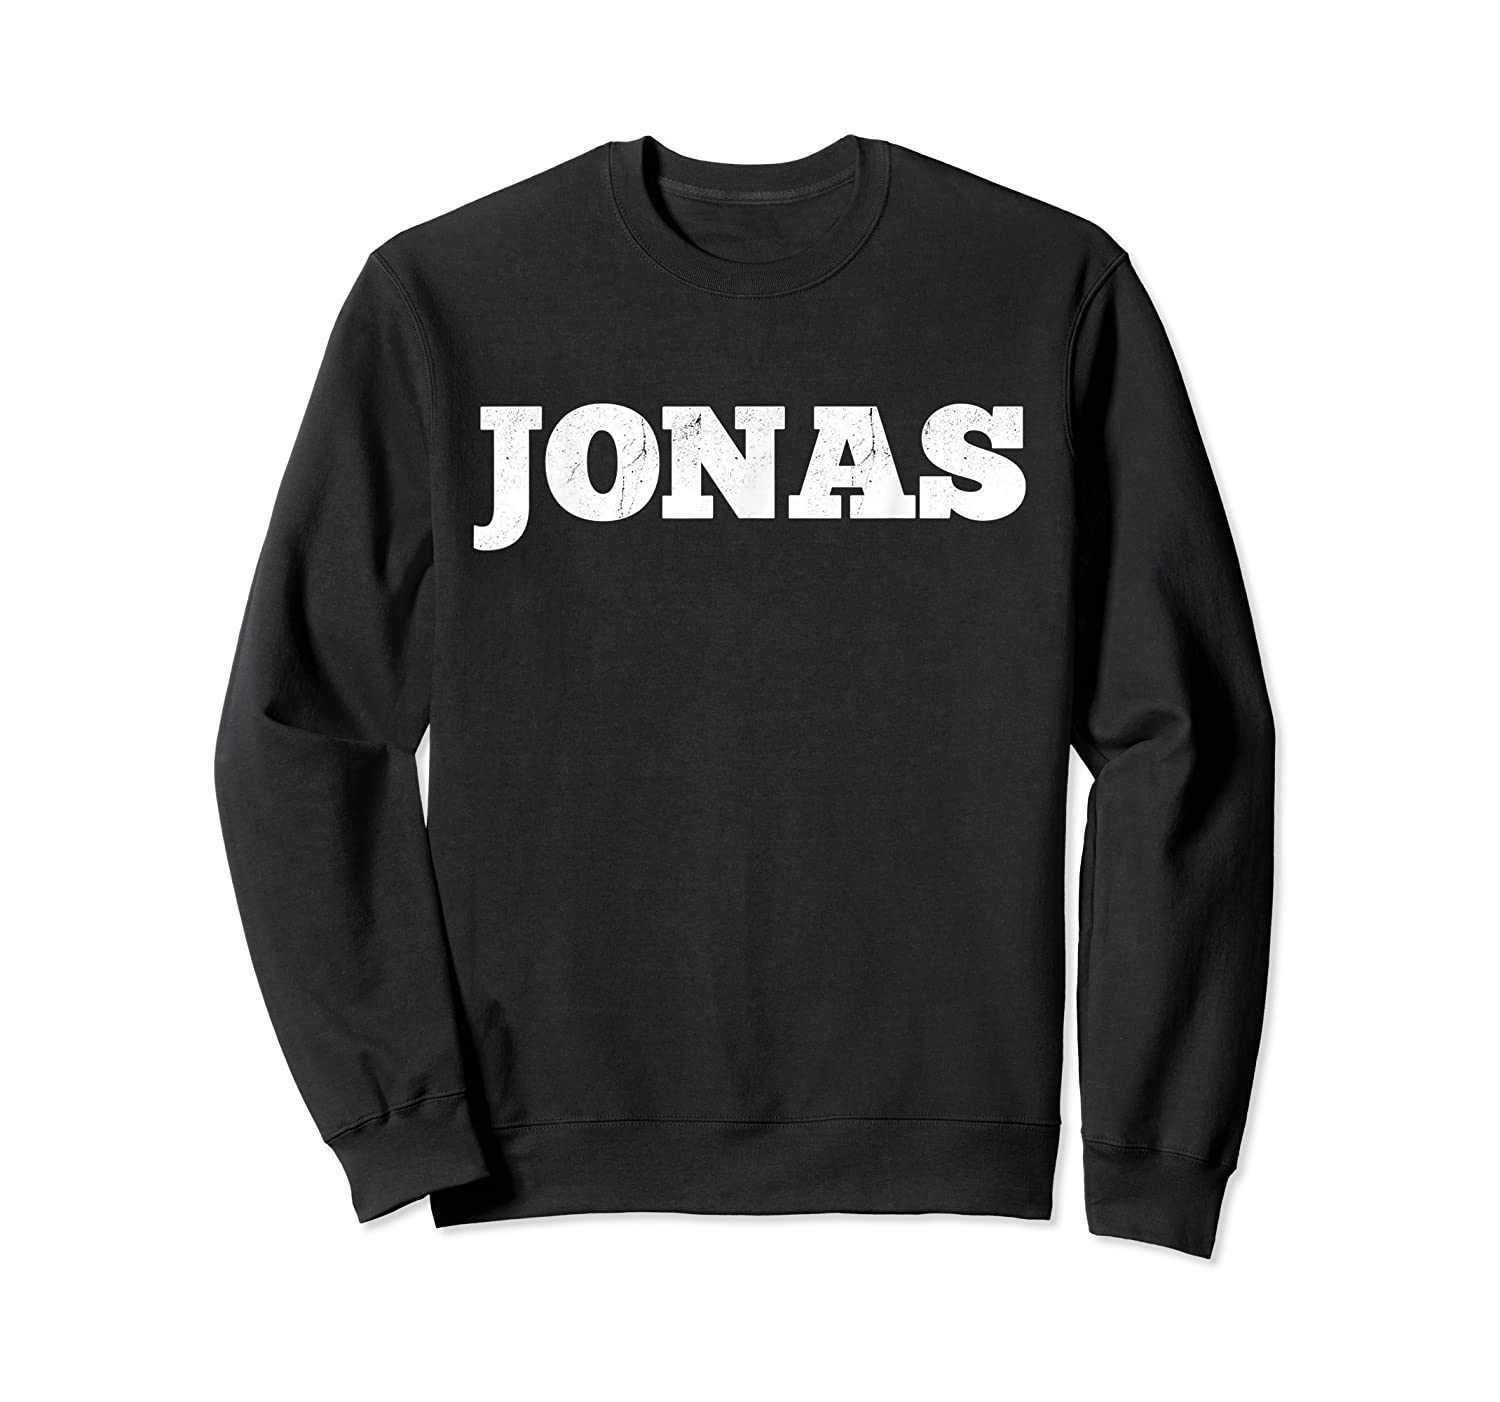 Jonas First Given Name Pride Gift T Shirt Crewneck Sweater